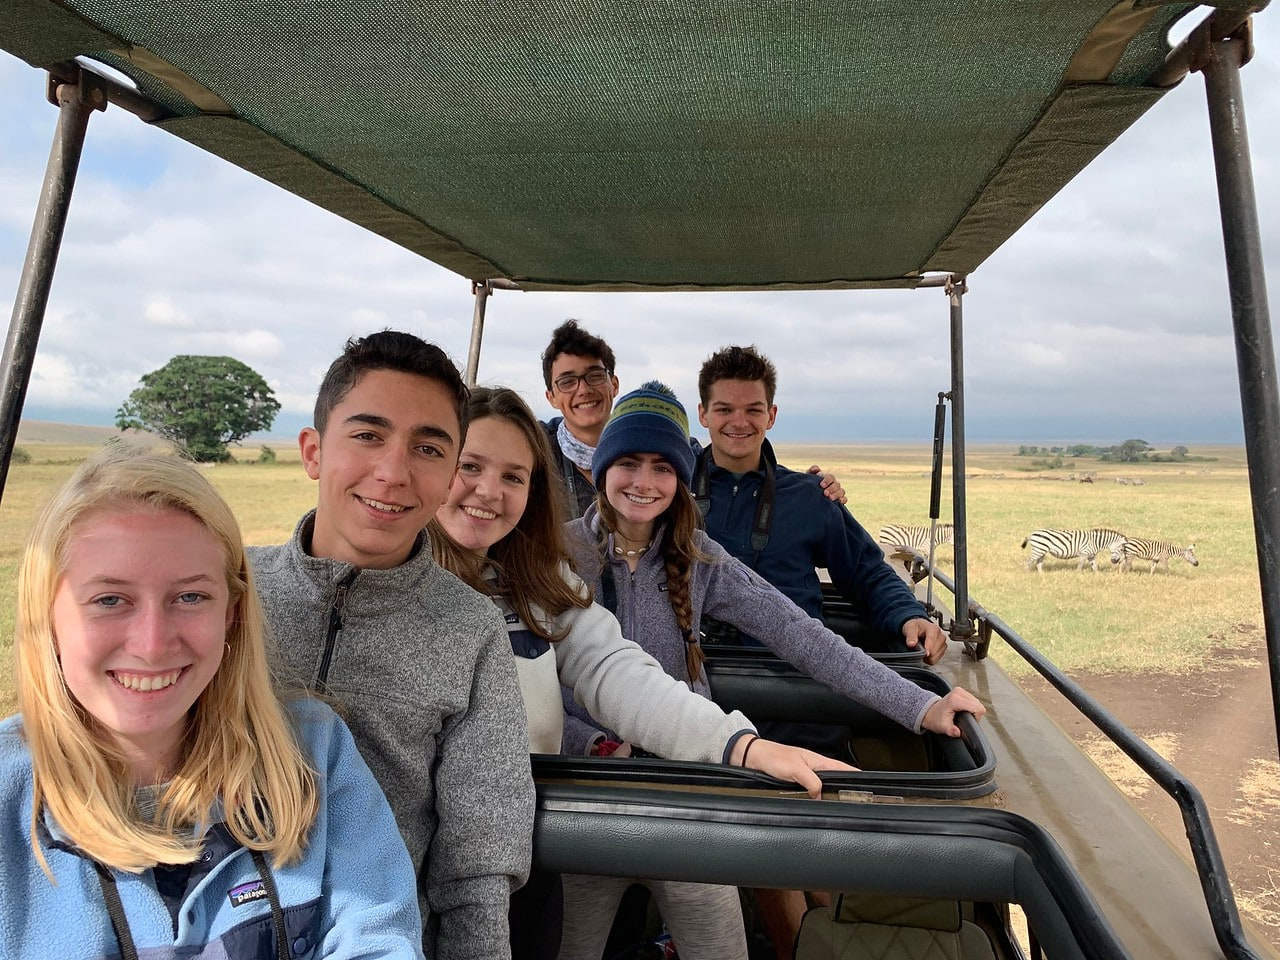 Campers take a ride through the Serengeti this summer while on a field studies program in Tanzania